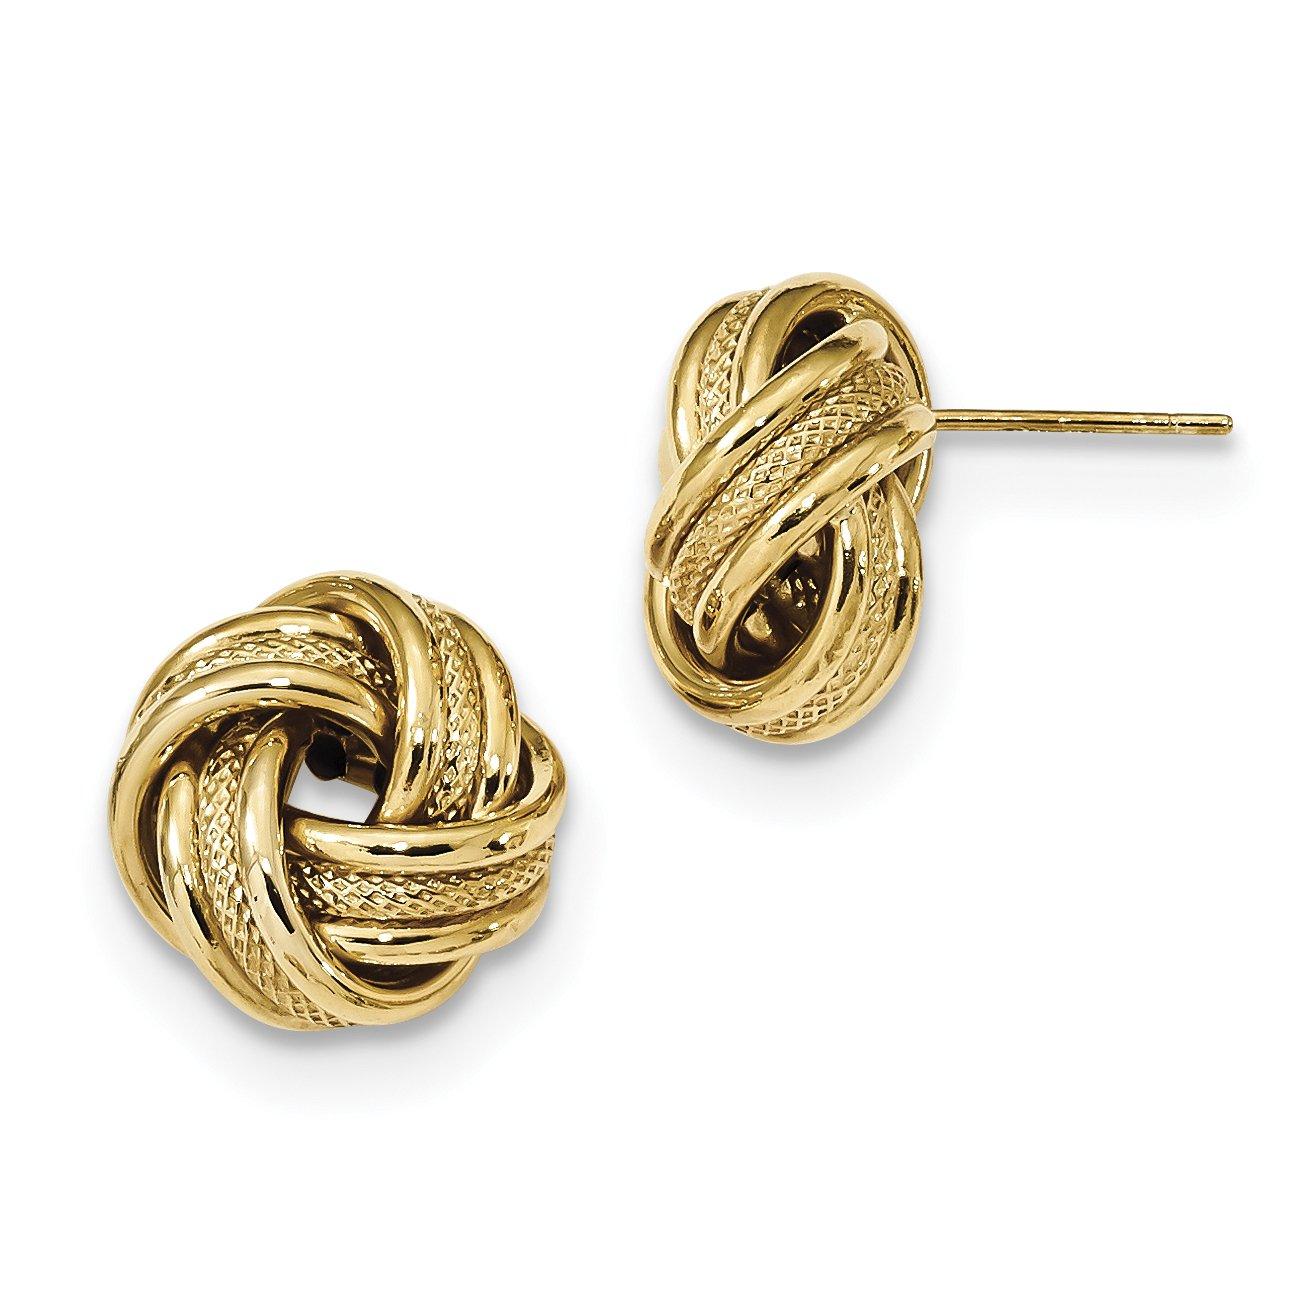 ICE CARATS 14k Yellow Gold Textured Triple Love Knot Post Stud Ball Button Earrings Fine Jewelry Gift For Women Heart